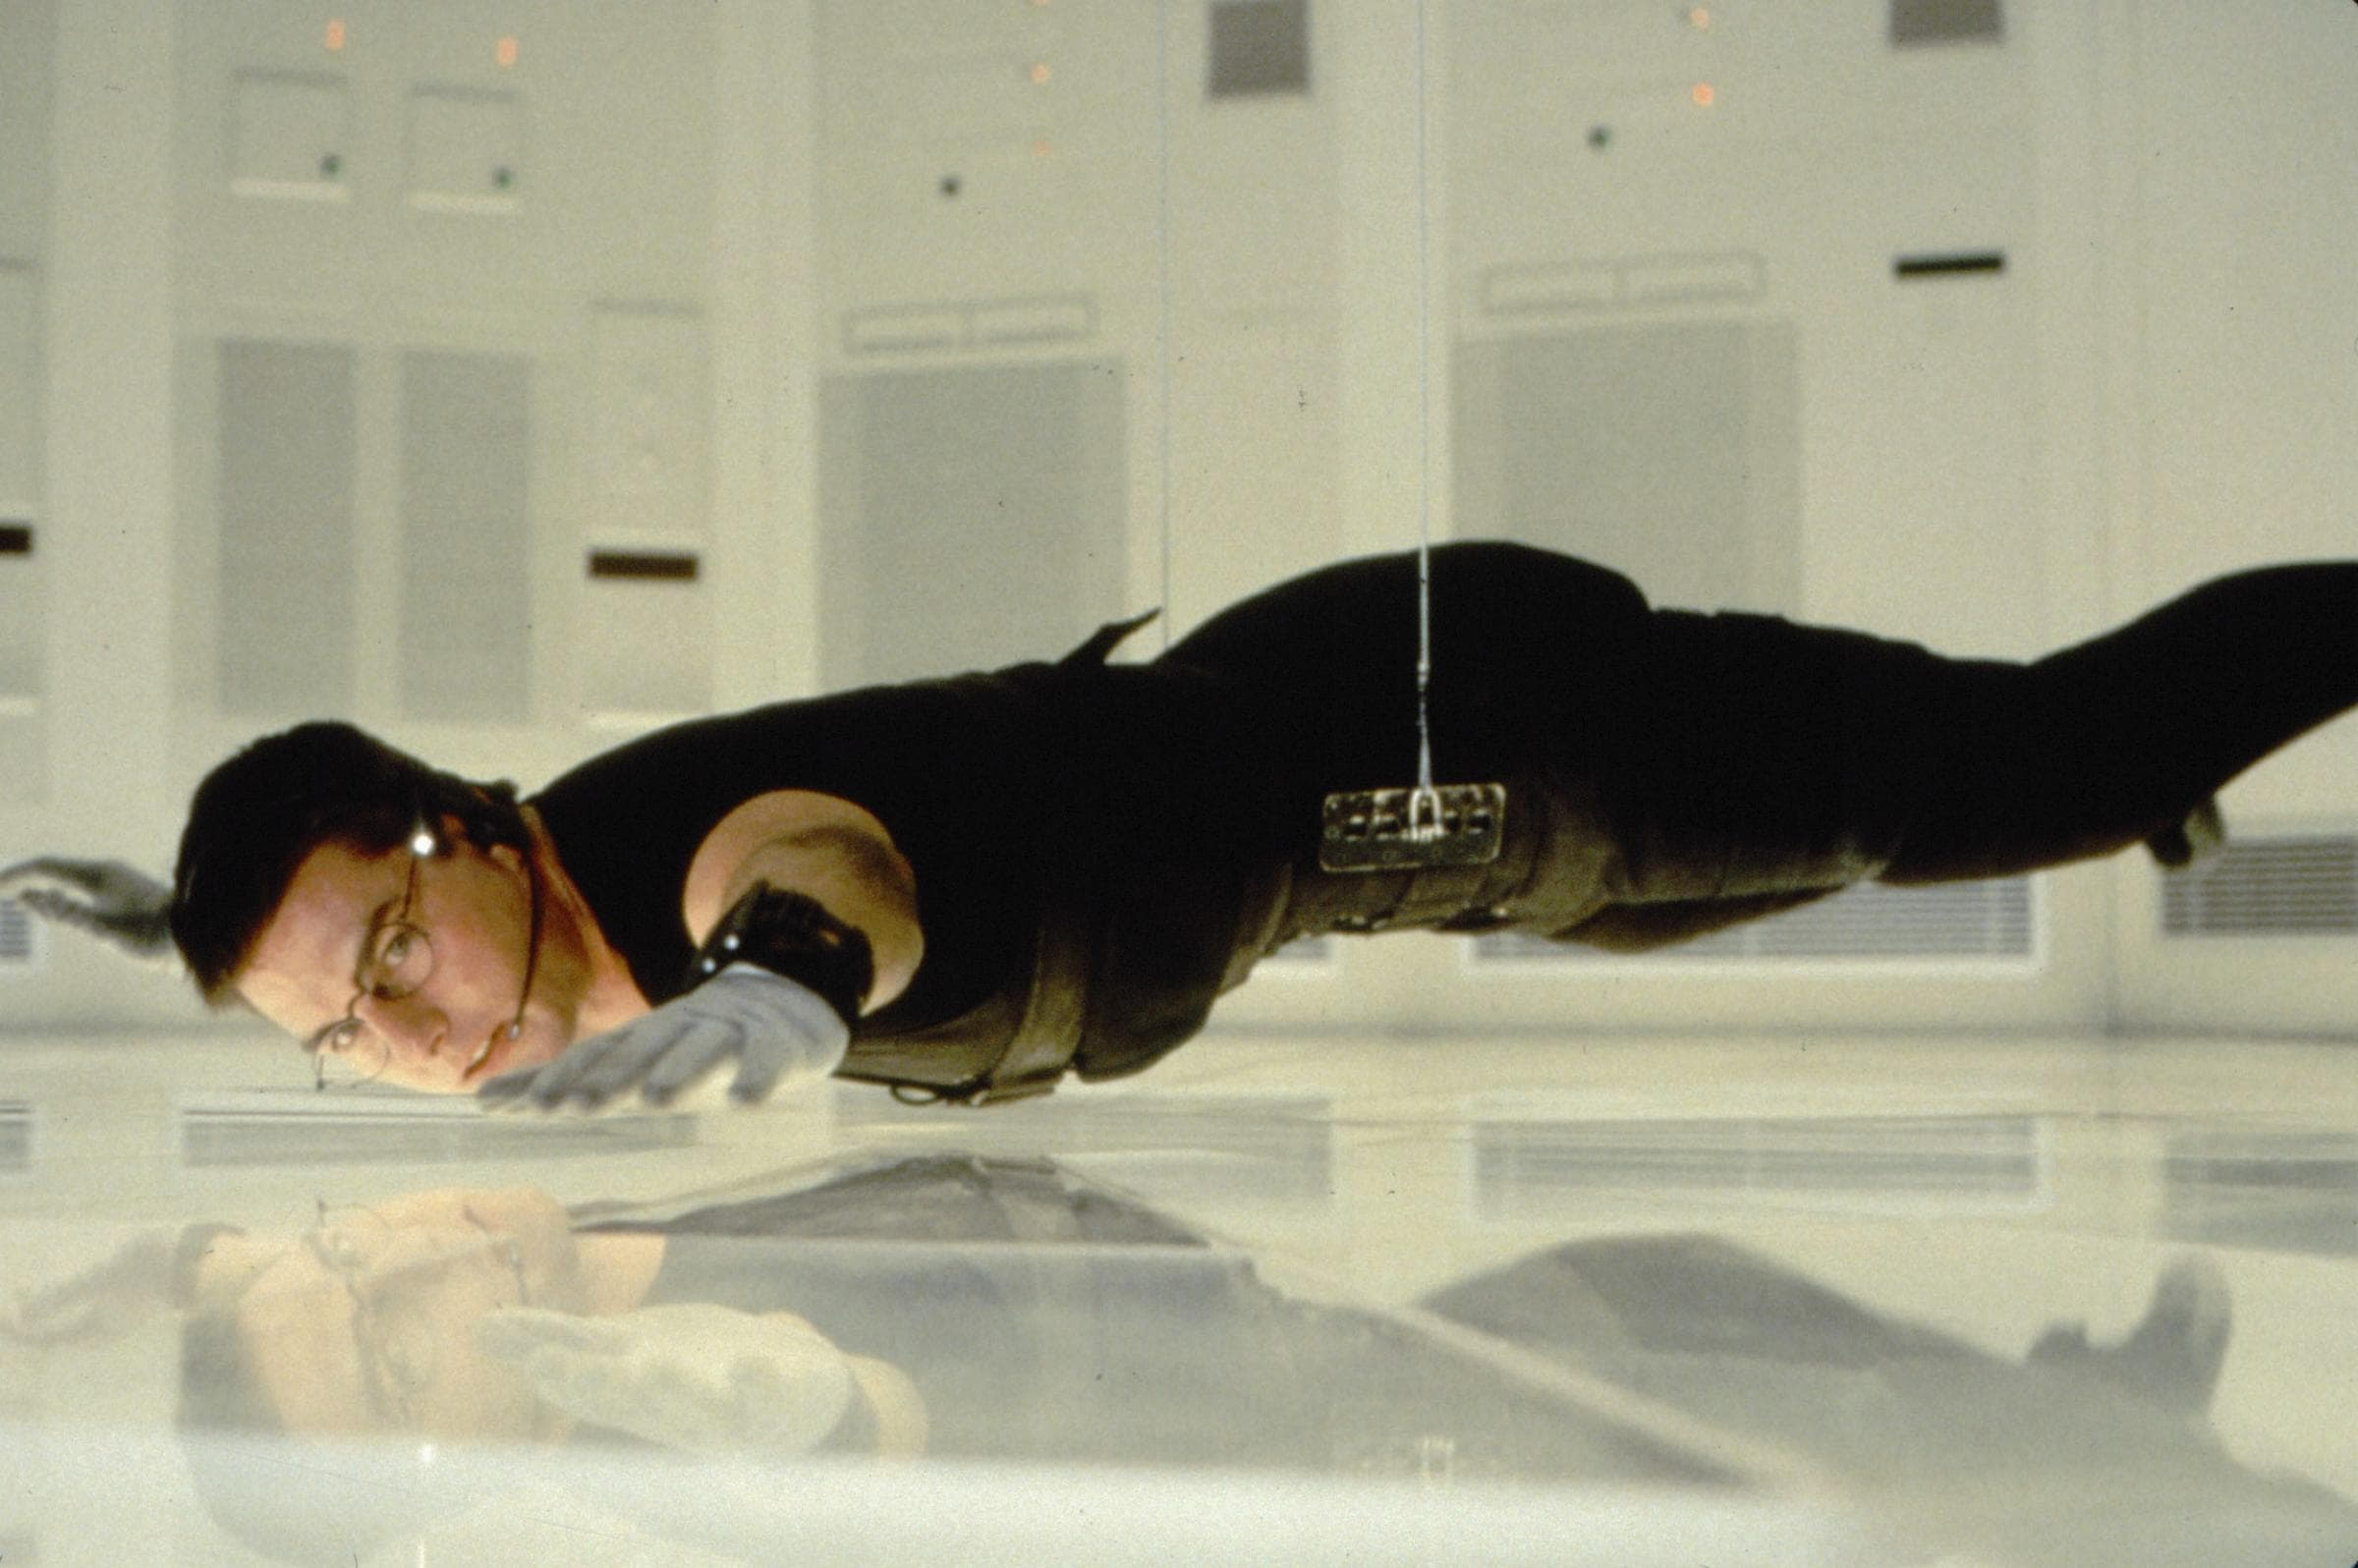 Random Things You Didn't Know About 'Mission: Impossible' Films